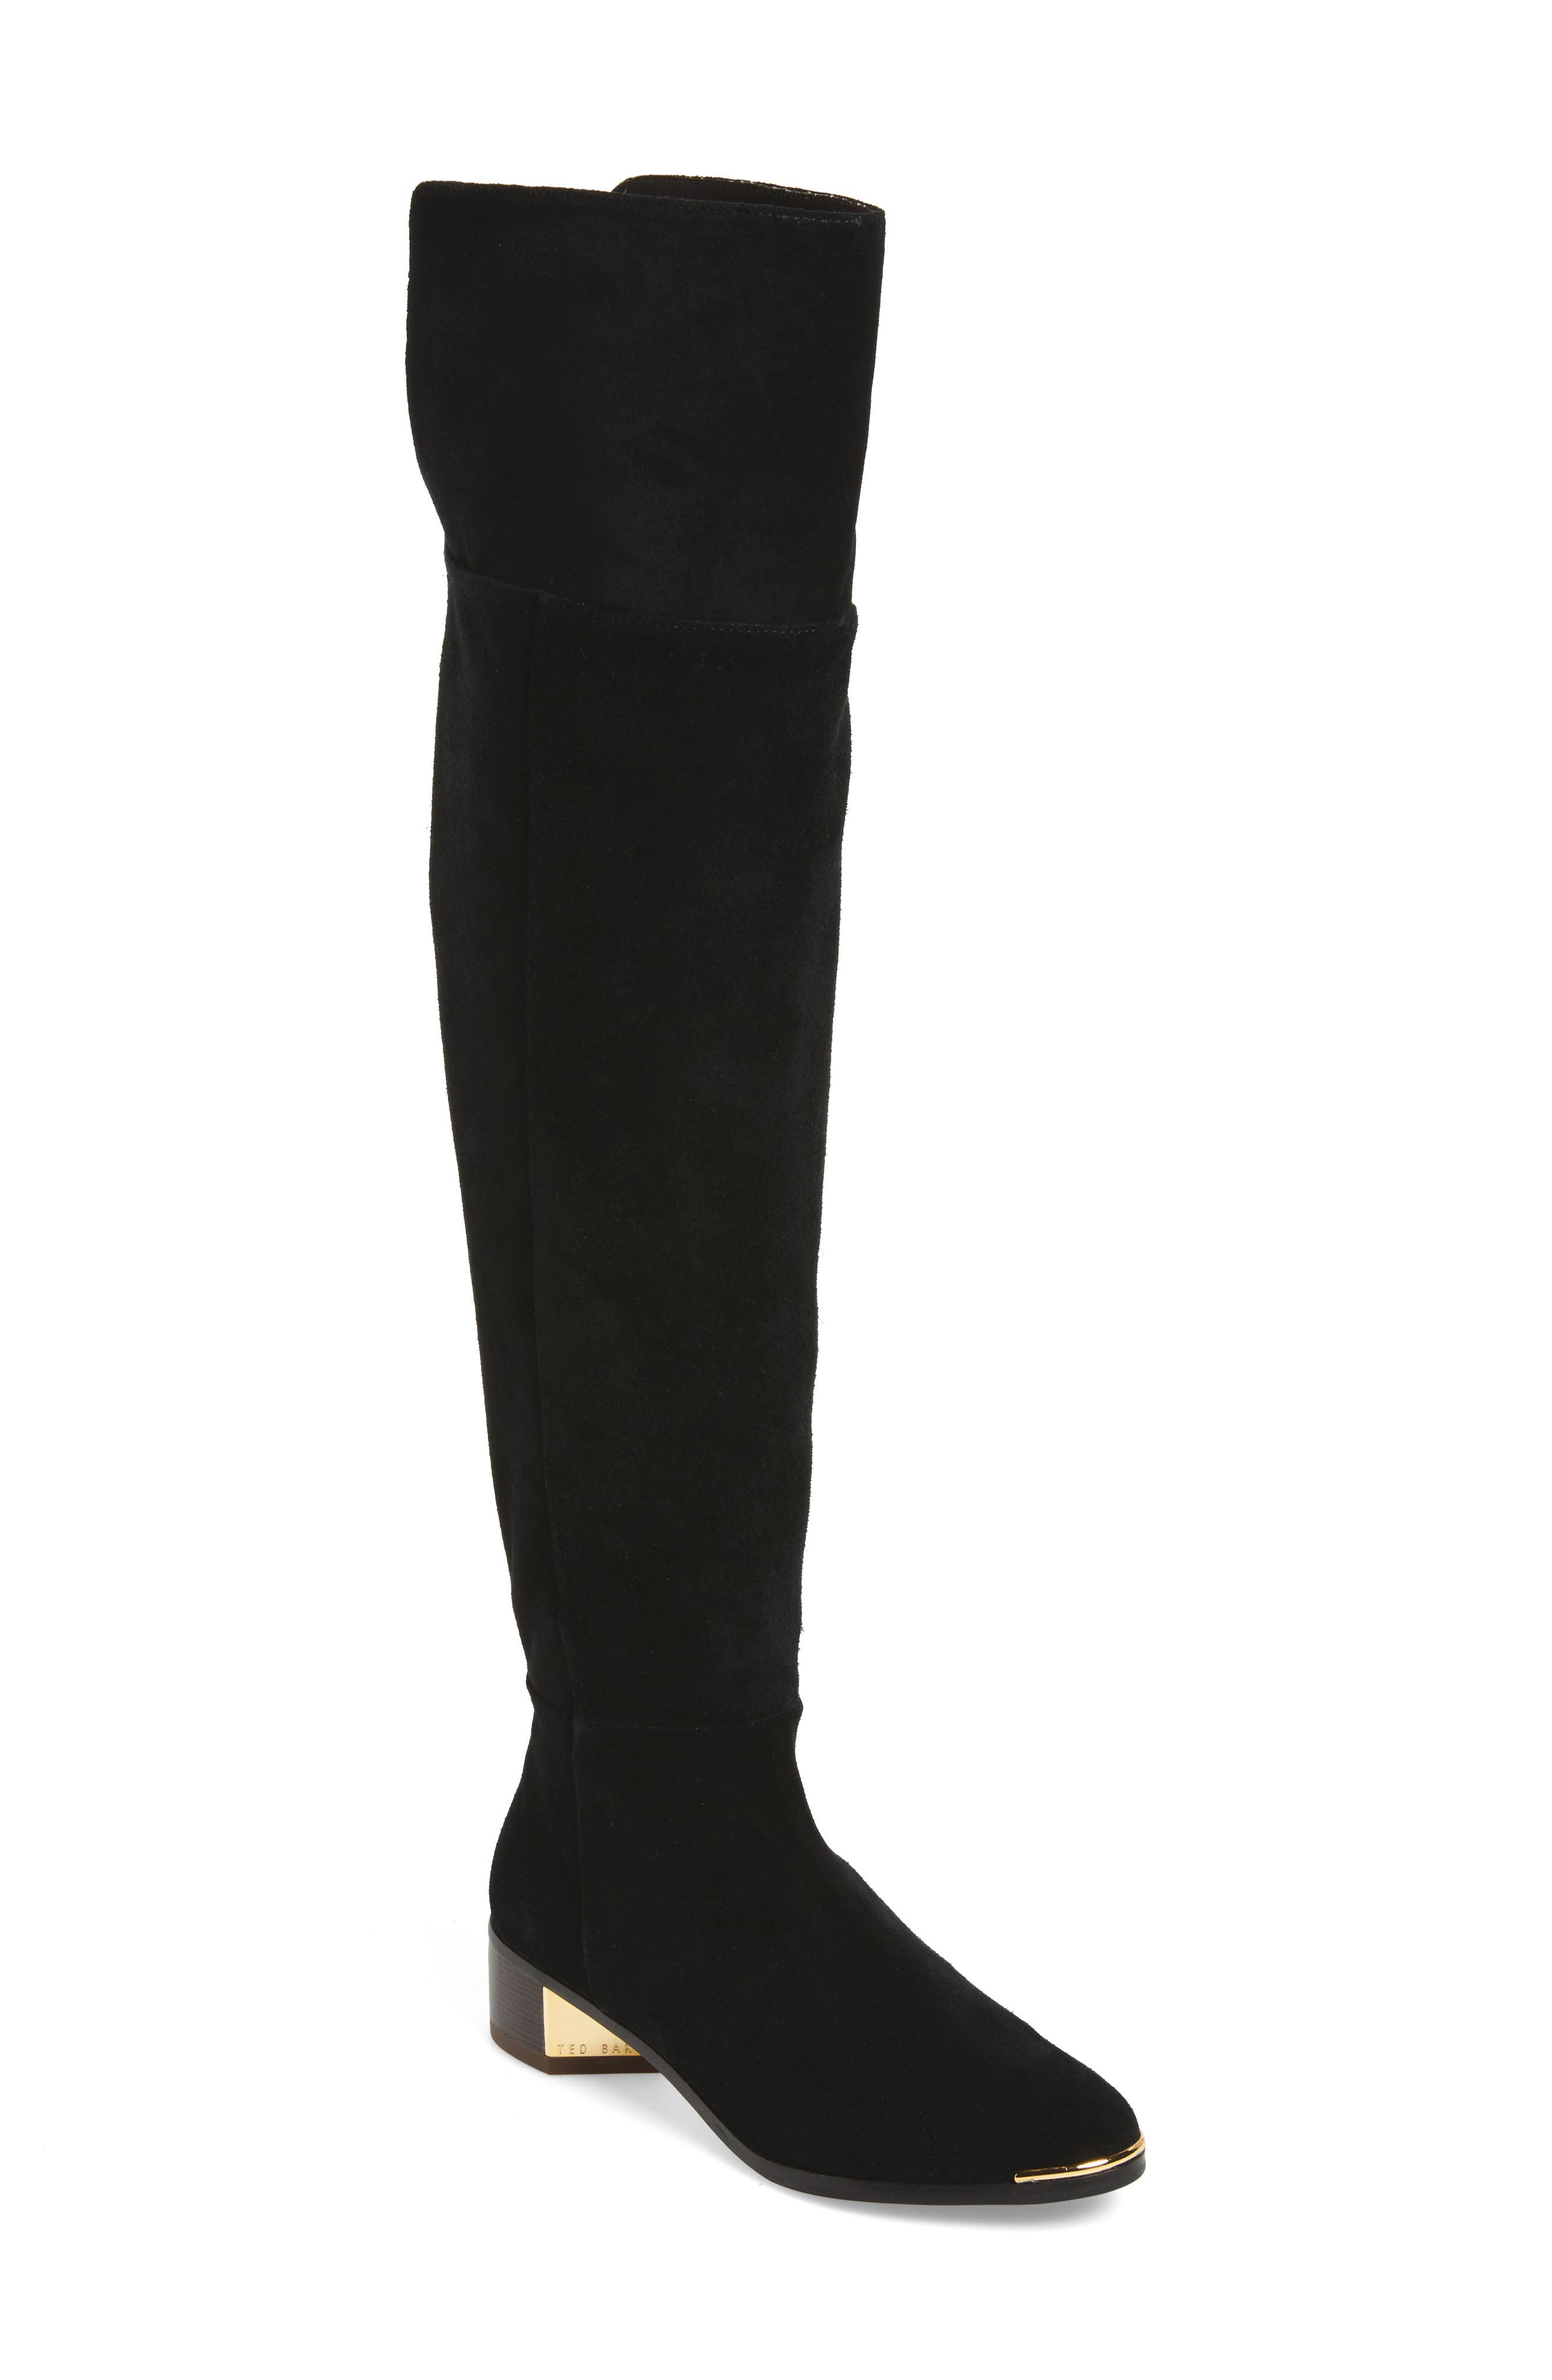 Nayomie Over the Knee Boot,                             Main thumbnail 1, color,                             Black Suede